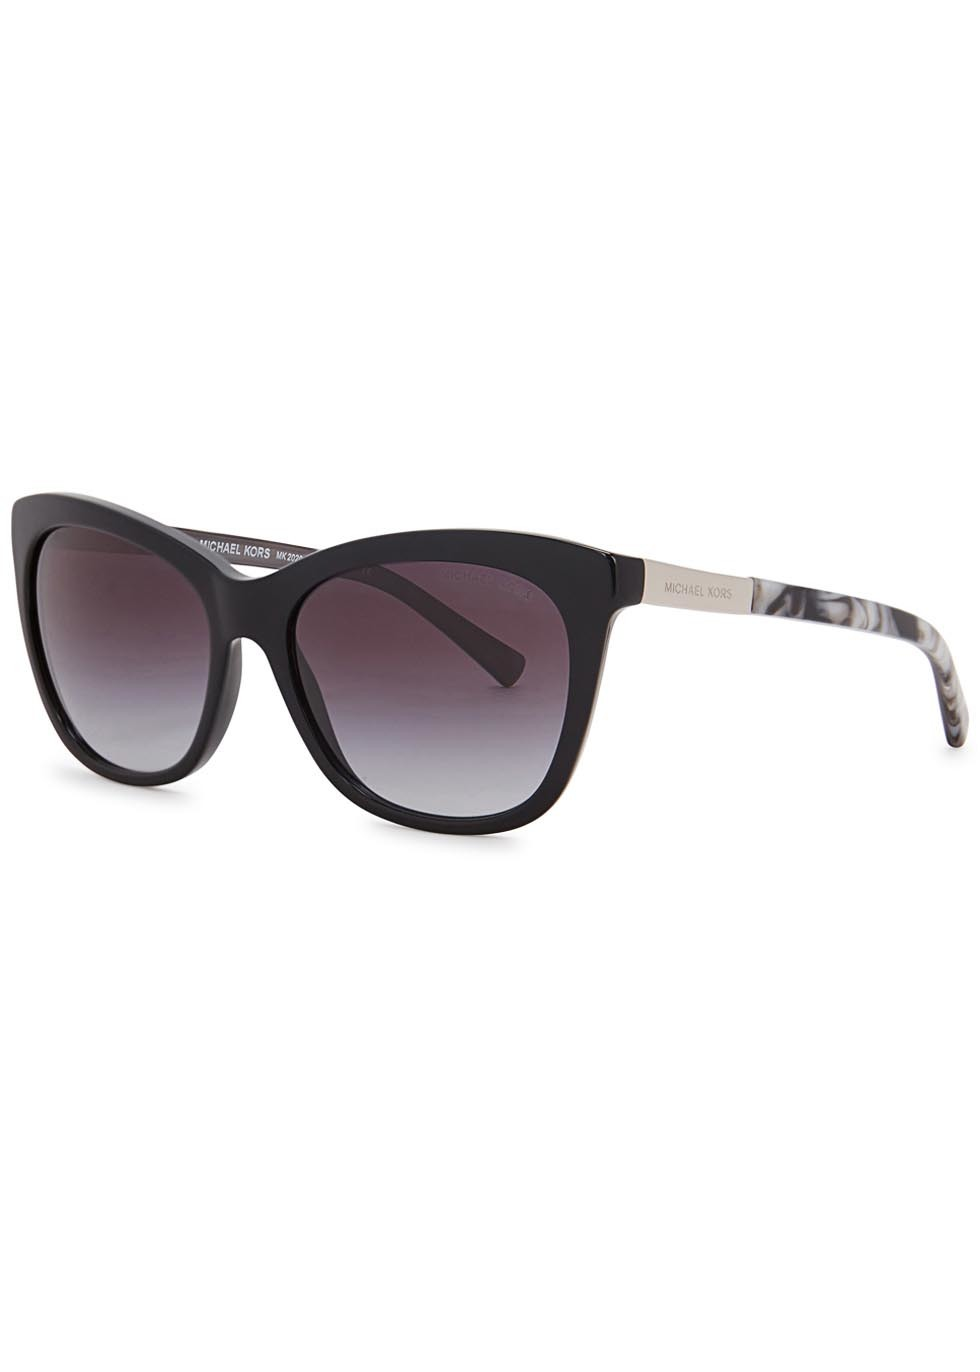 Adelaide Ii Black Cat Eye Sunglasses - predominant colour: black; occasions: casual, holiday; style: cateye; size: standard; material: plastic/rubber; pattern: plain; finish: plain; season: s/s 2016; wardrobe: basic